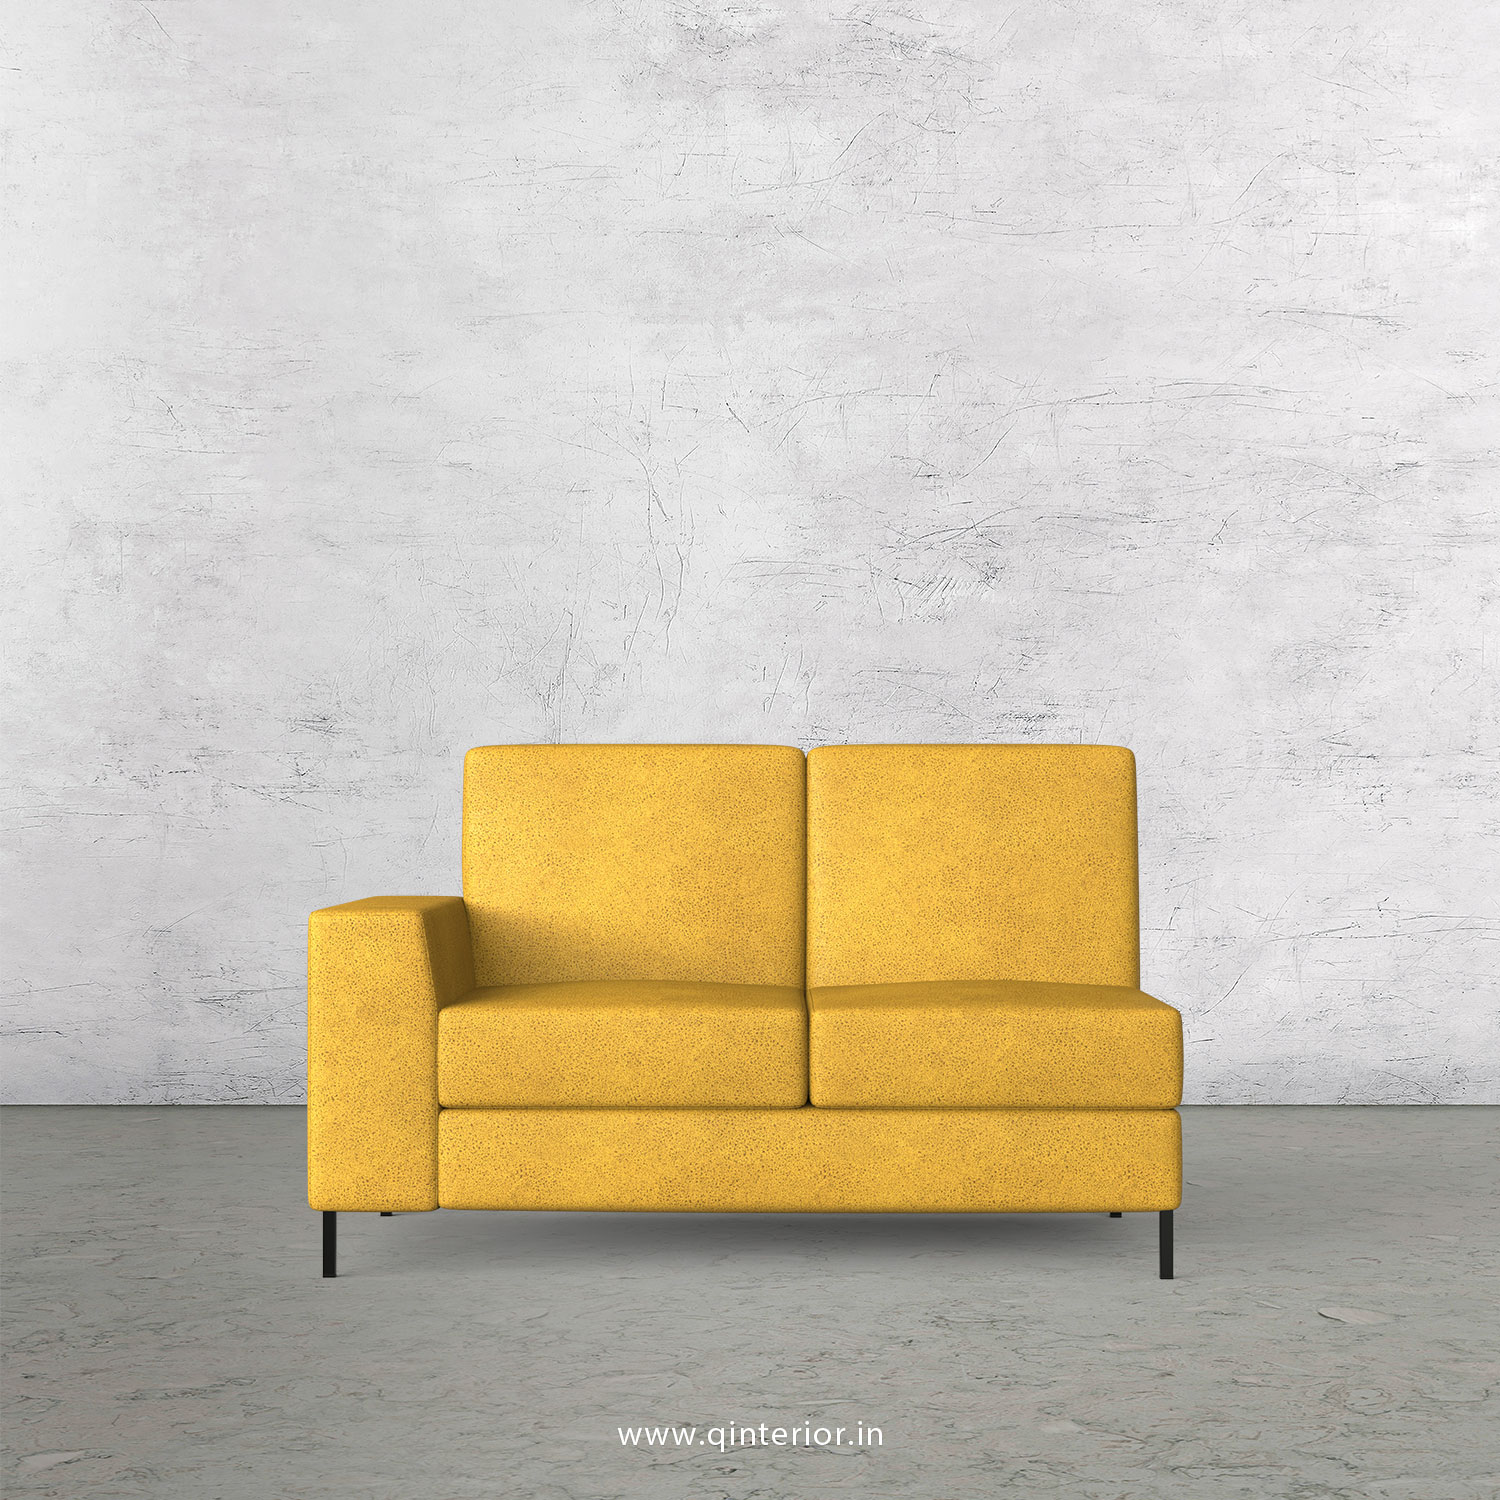 Viva 2 Seater Modular Sofa in Fab Leather Fabric - MSFA002 FL18